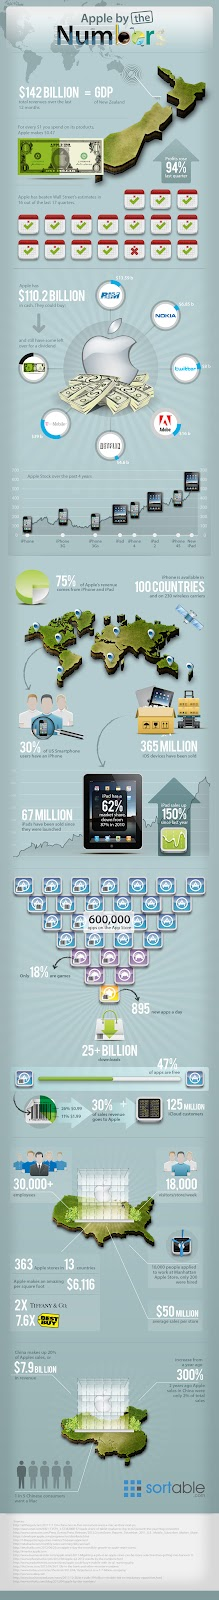 http://mashable.com/2012/05/22/apple-by-the-numbers-infographic/